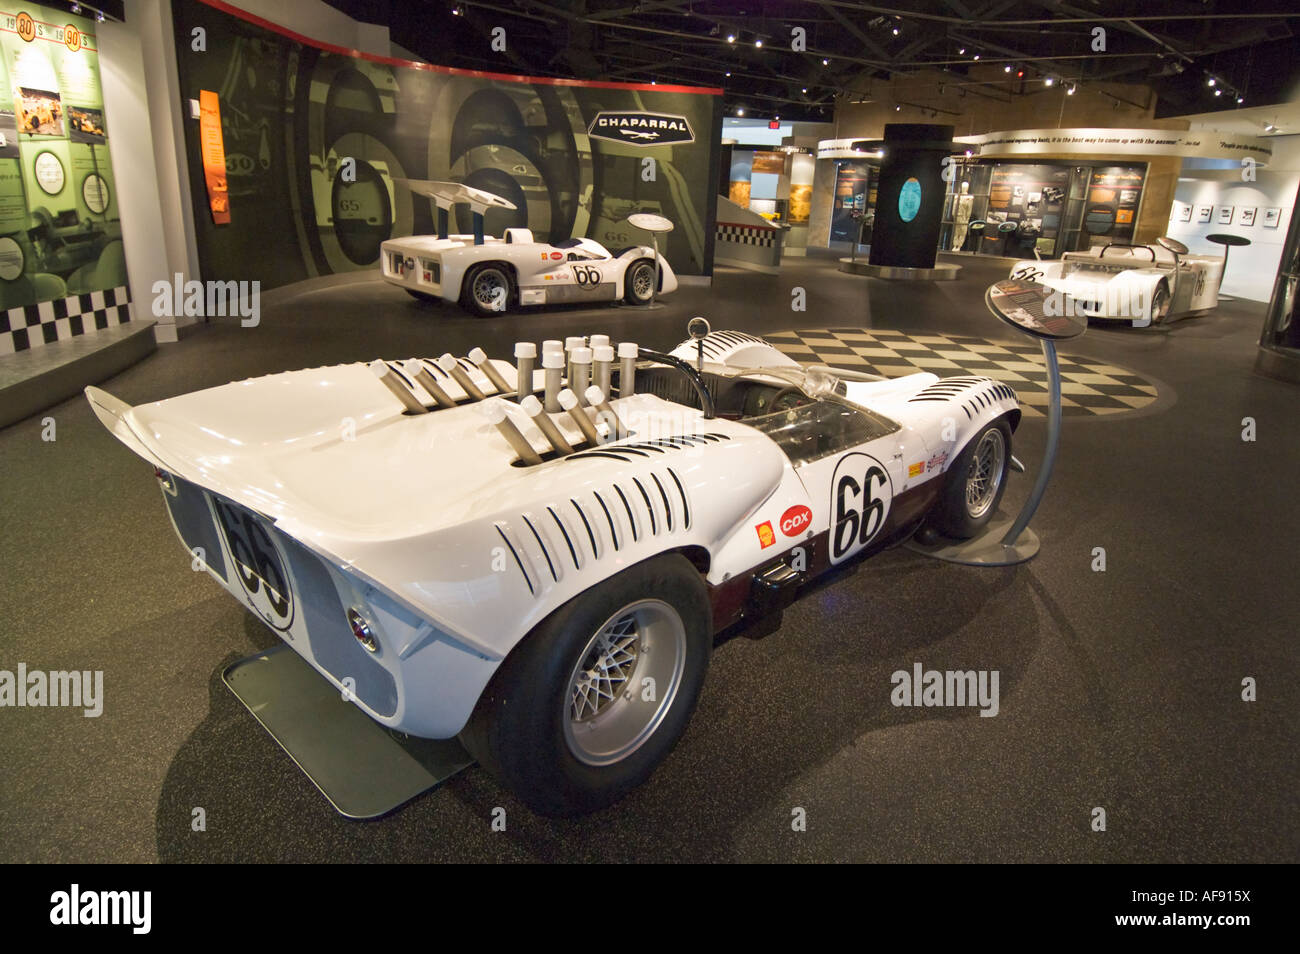 Chaparral Race Car Museum